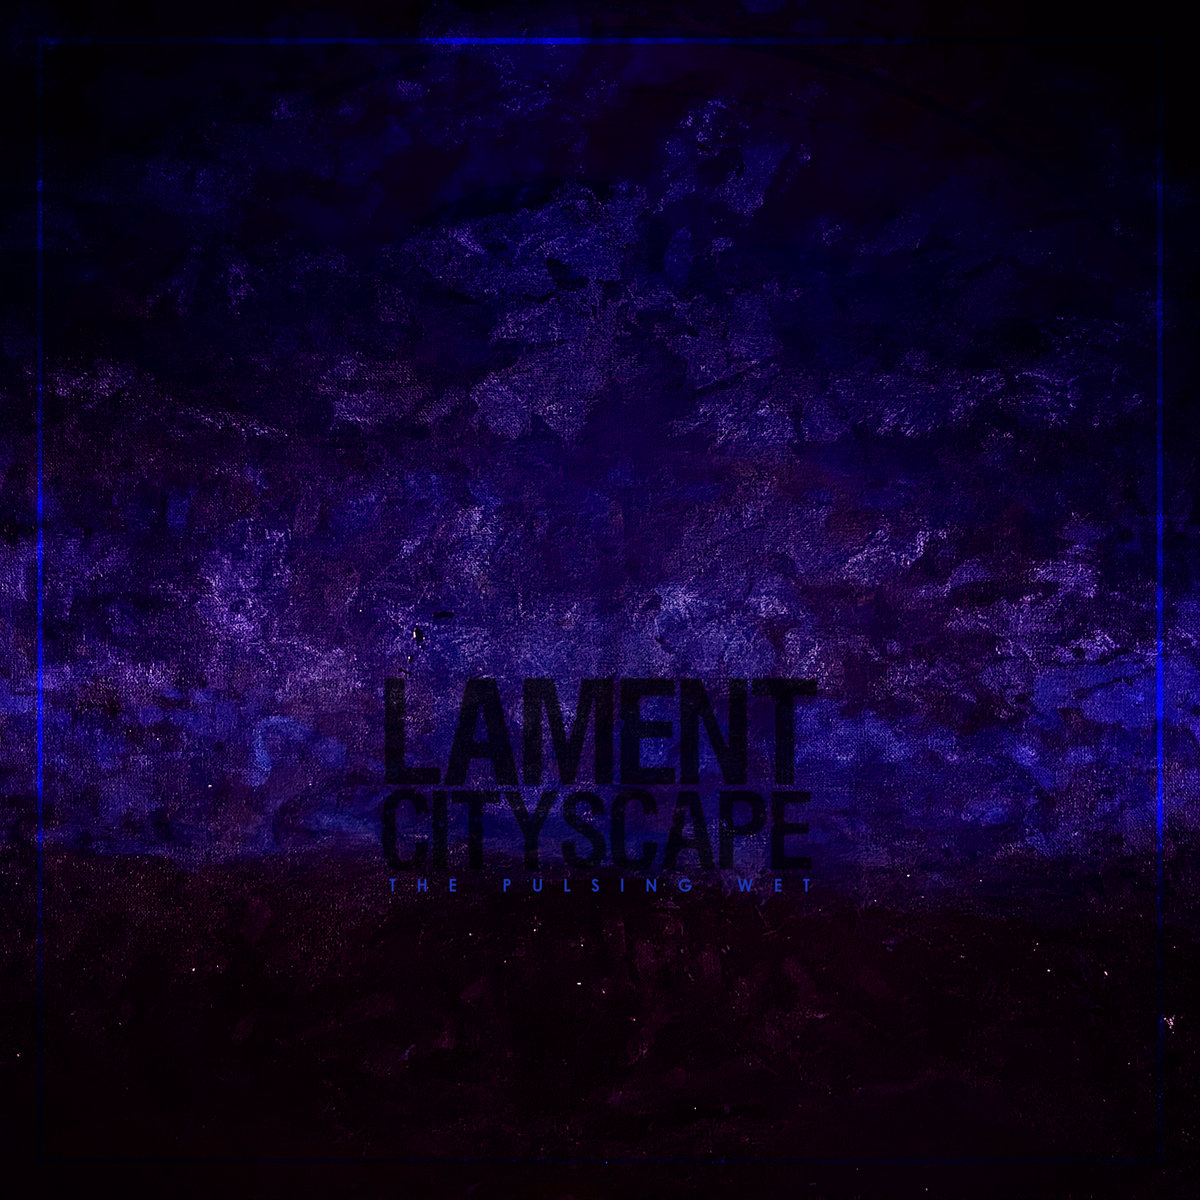 The Pulsing Wet | Lament Cityscape